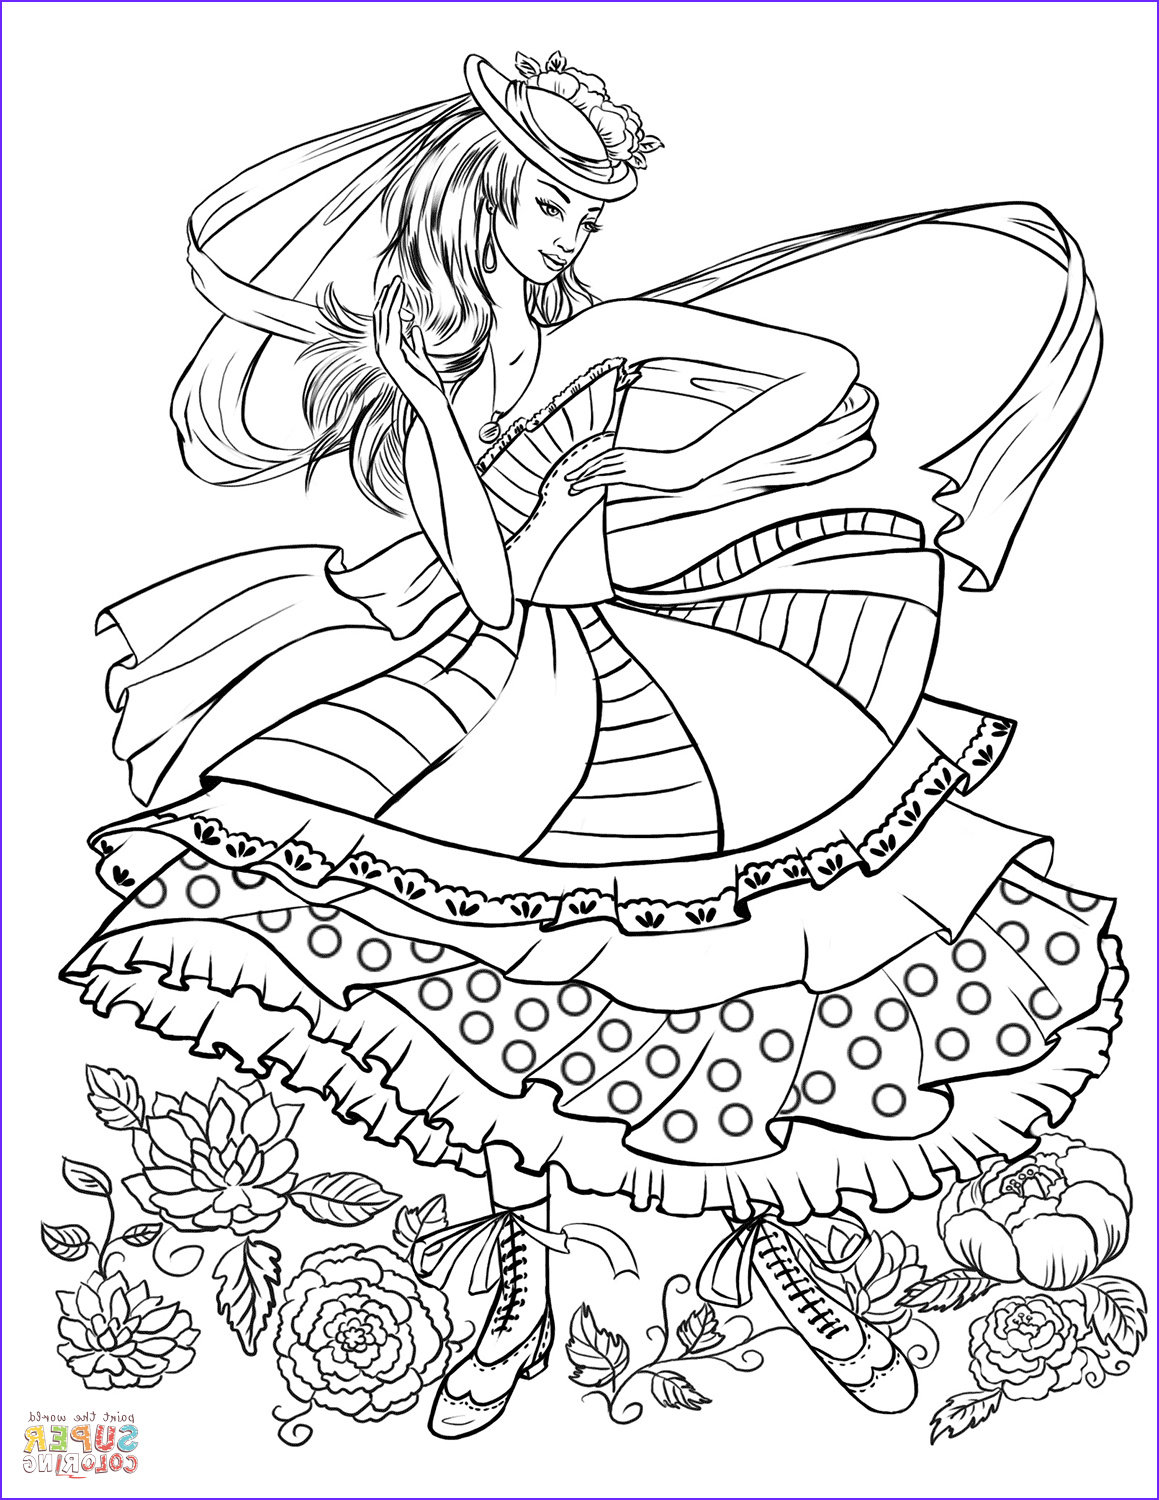 Fashion Coloring Elegant Photos Girl Dancing In A Vintage Fashion Clothing Coloring Page